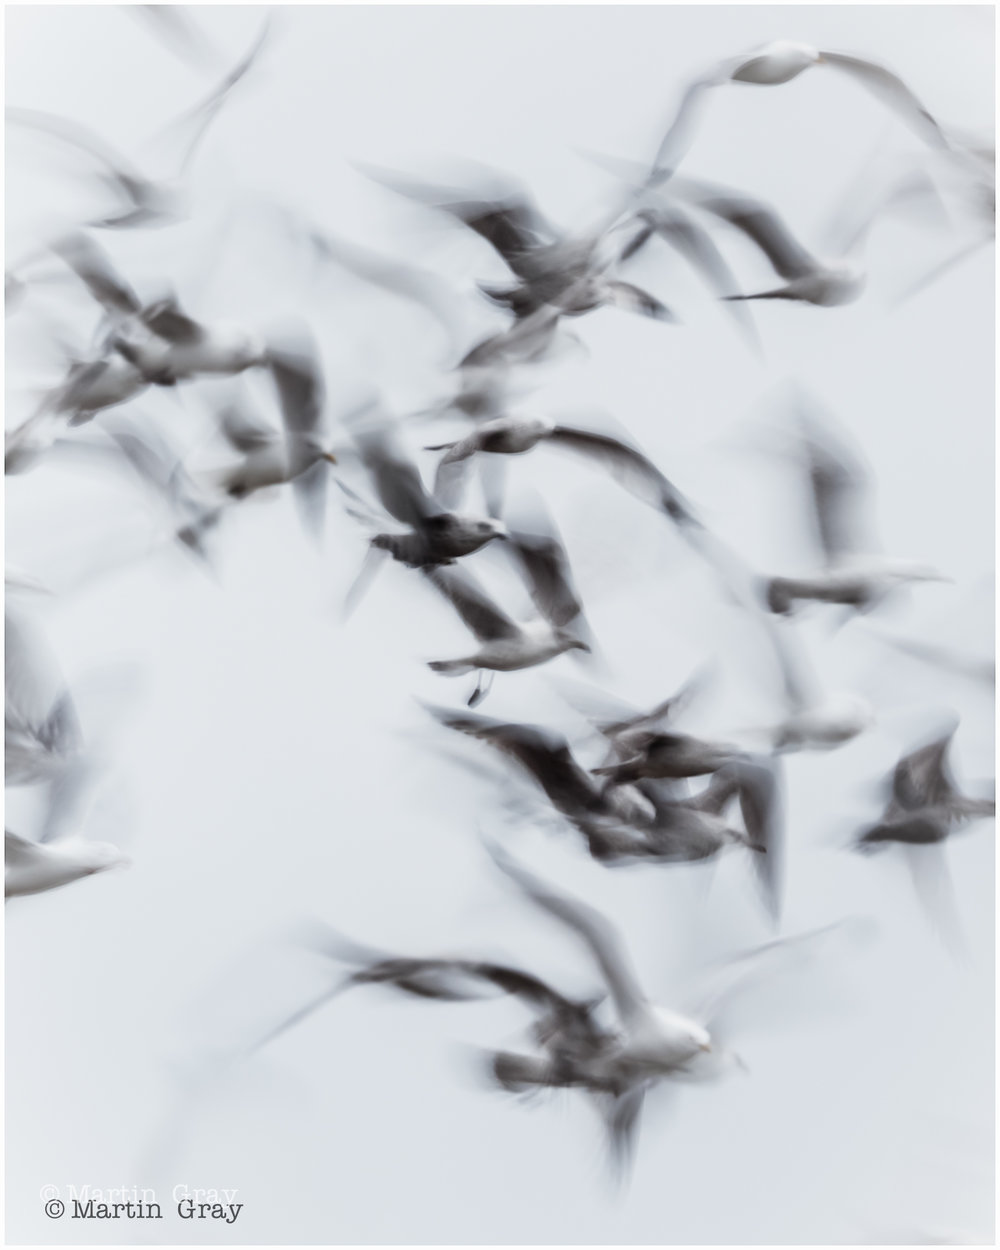 'Gulls in Motion' …    Guernsey Eisteddfod 2019 - Honours in Nature Projected Digital Image.